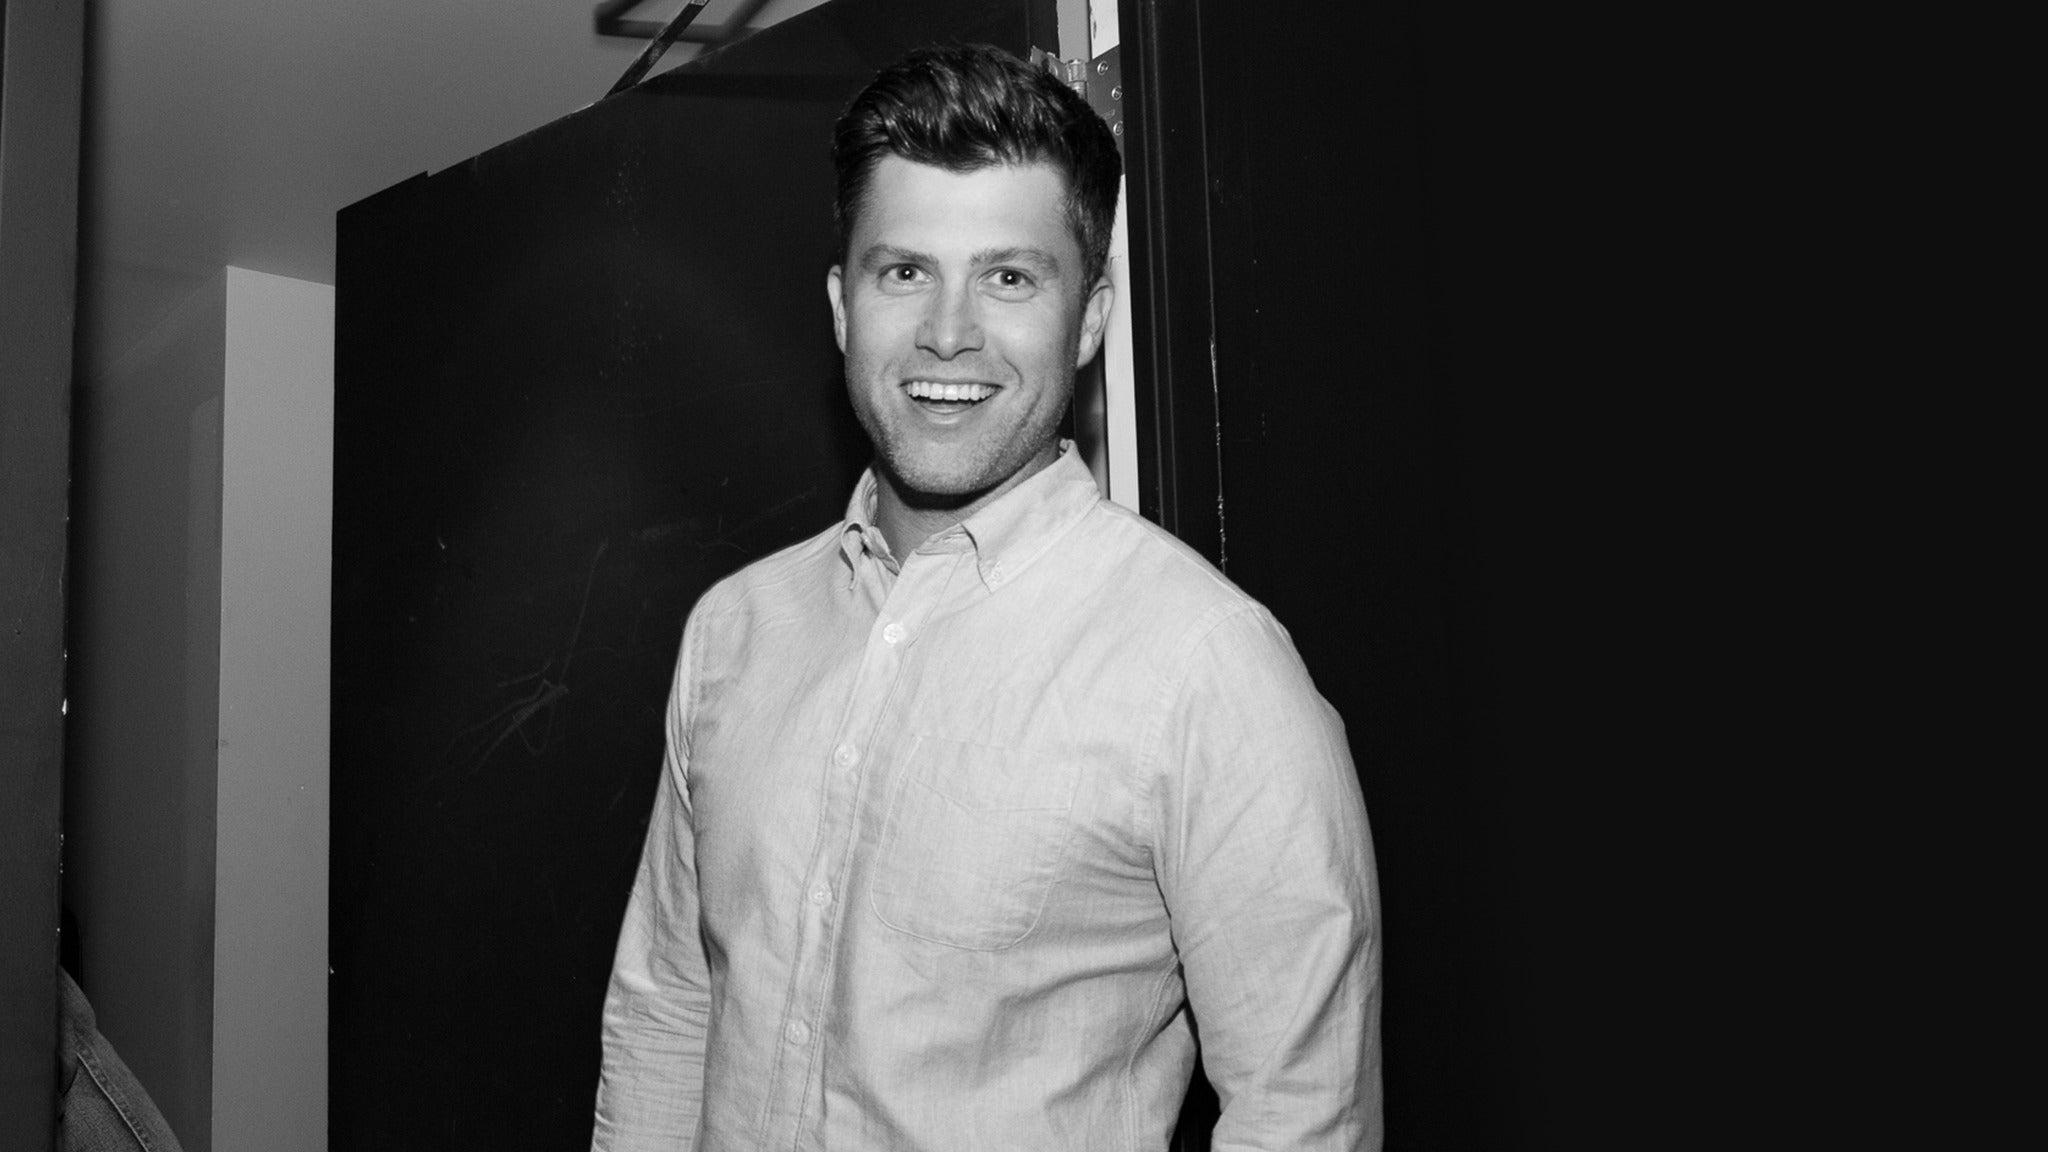 Colin Jost at Ridgefield Playhouse - Ridgefield, CT 06877